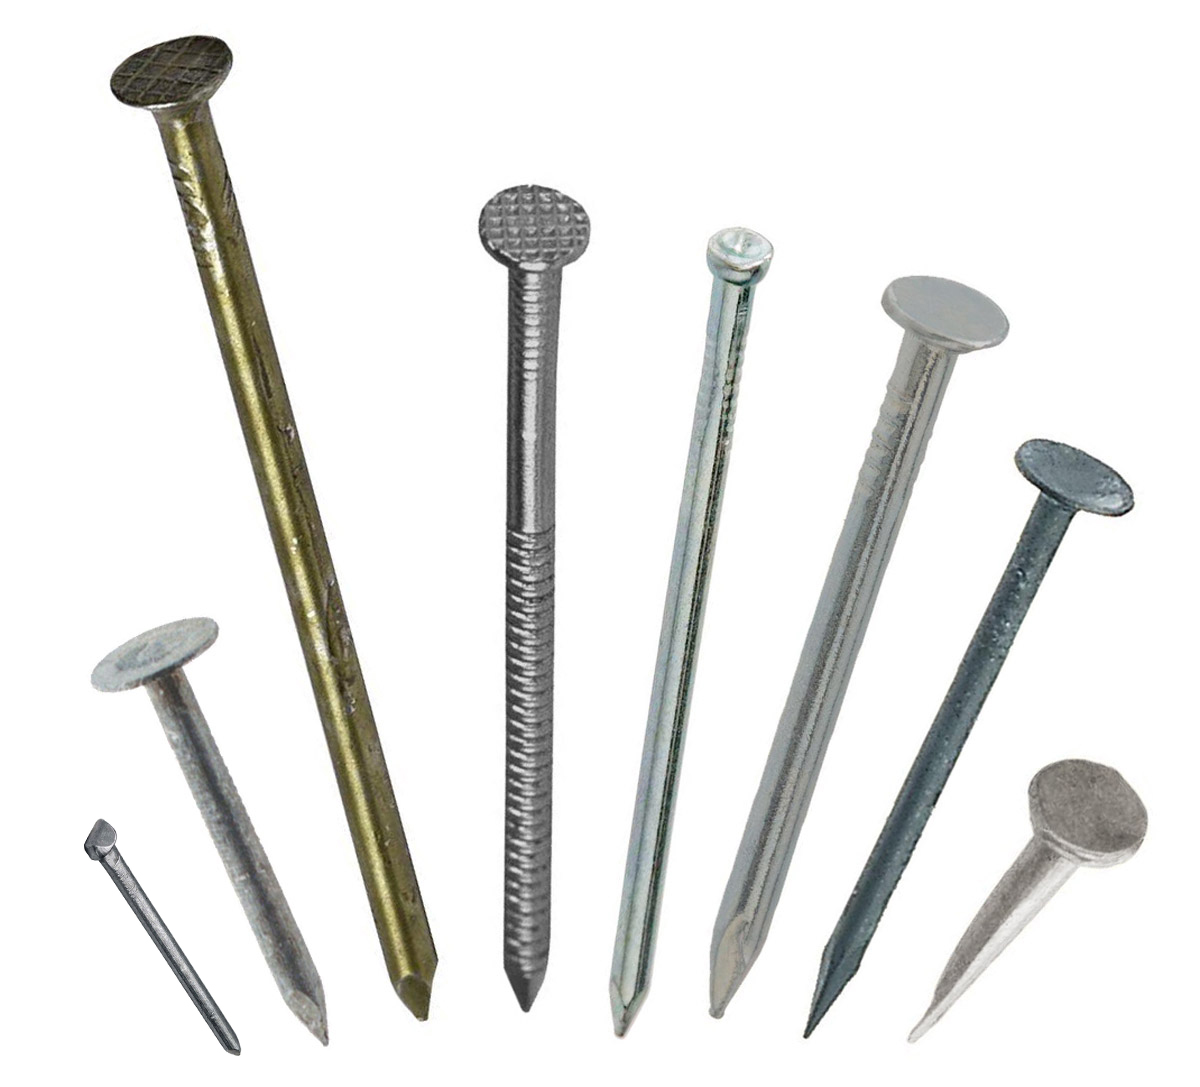 Figure 9. Some types of nails. See text for details.